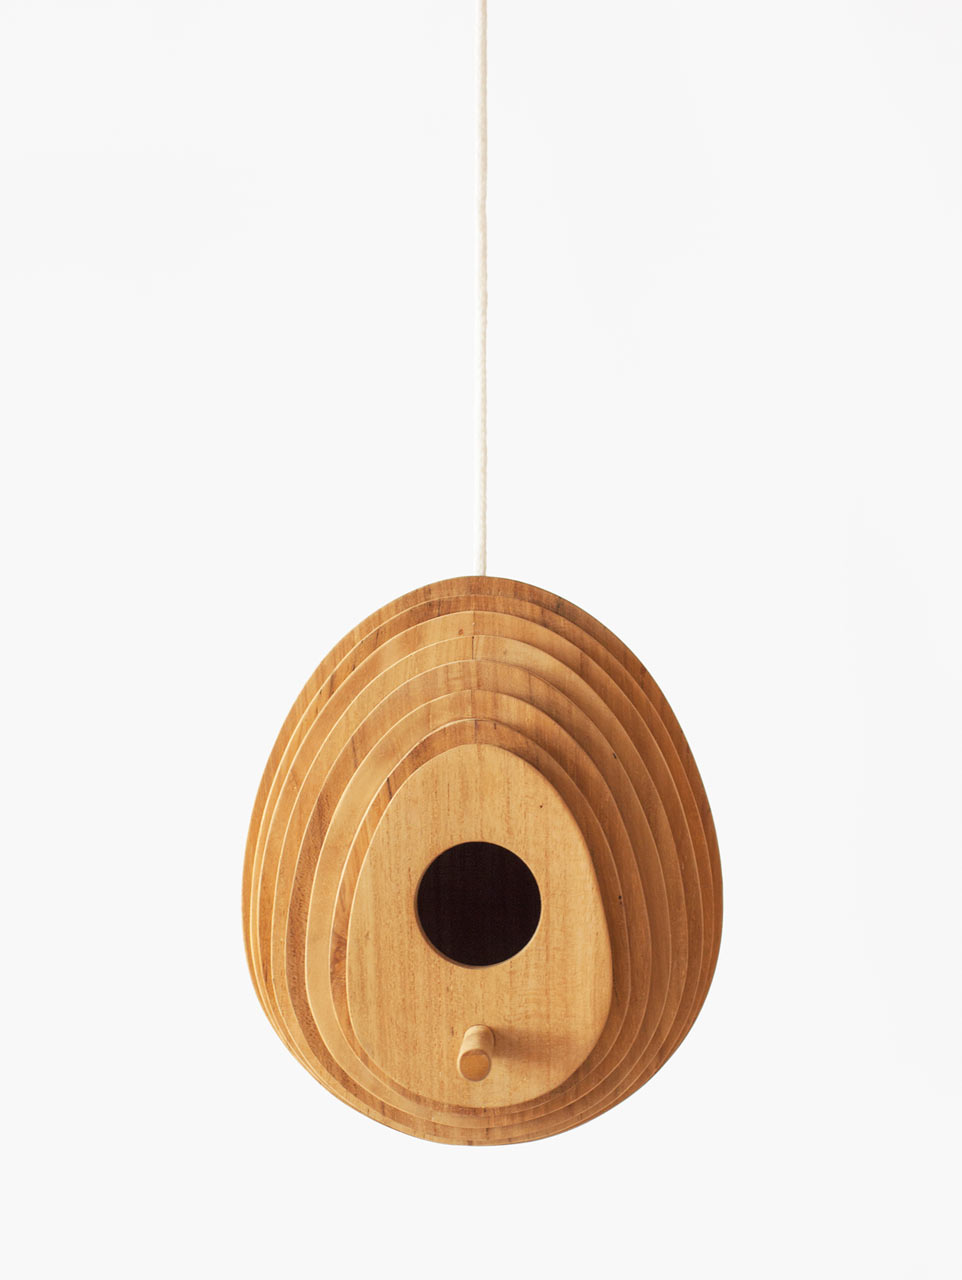 Tree-Ring-Birdhouse-Jarrod-Lim-Hinika-2